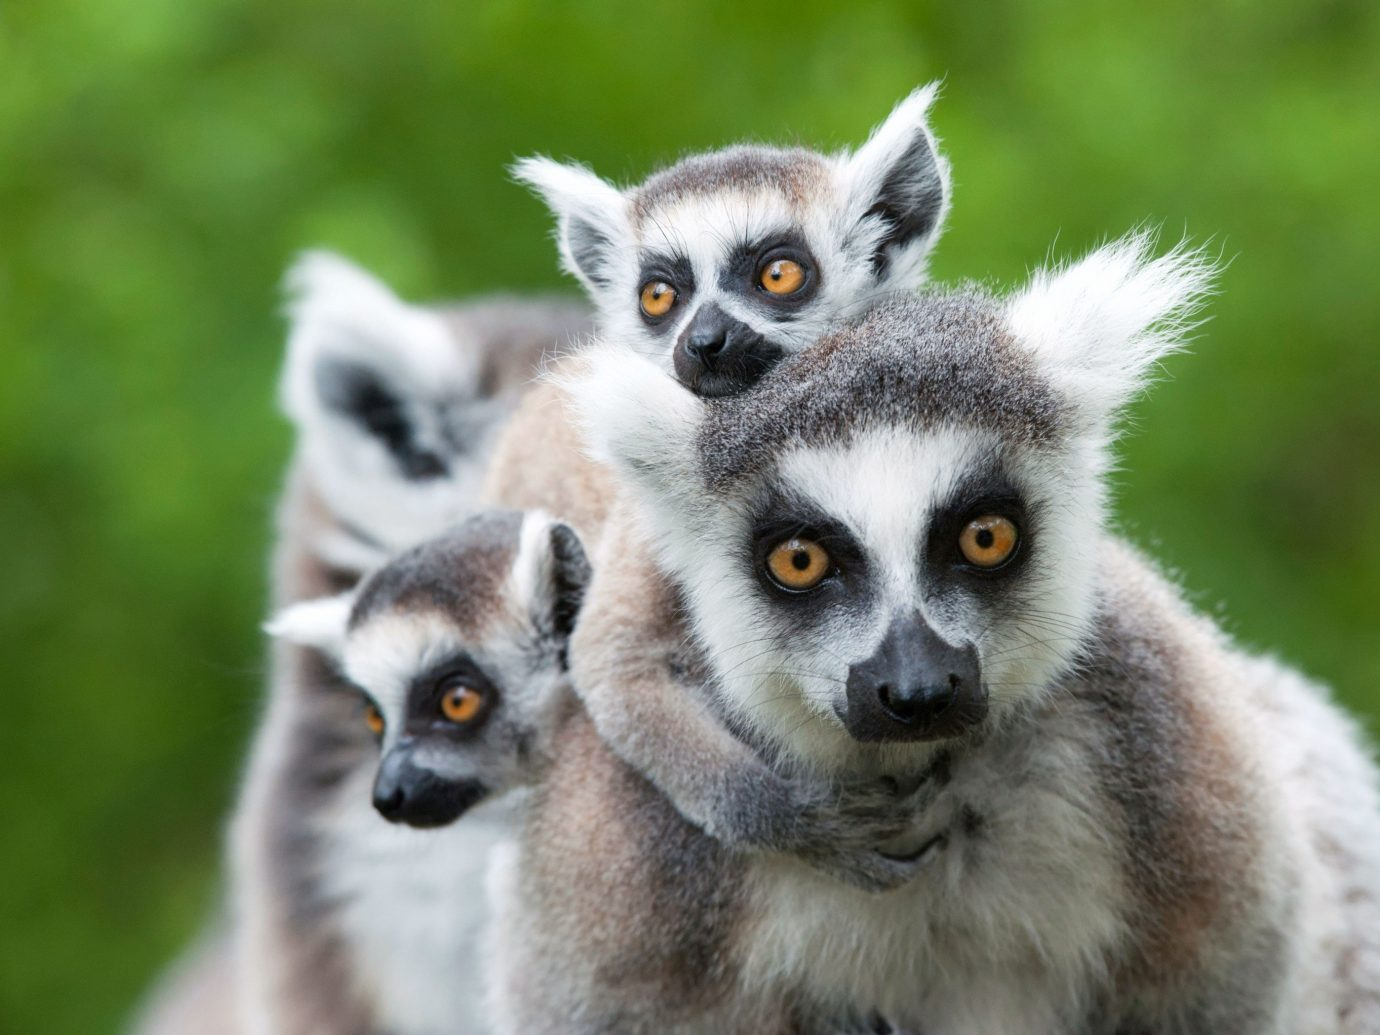 Trip Ideas mammal animal lemur vertebrate primate langur Wildlife fauna squirrel monkey pygmy slow loris loris new world monkey close staring bassarisk